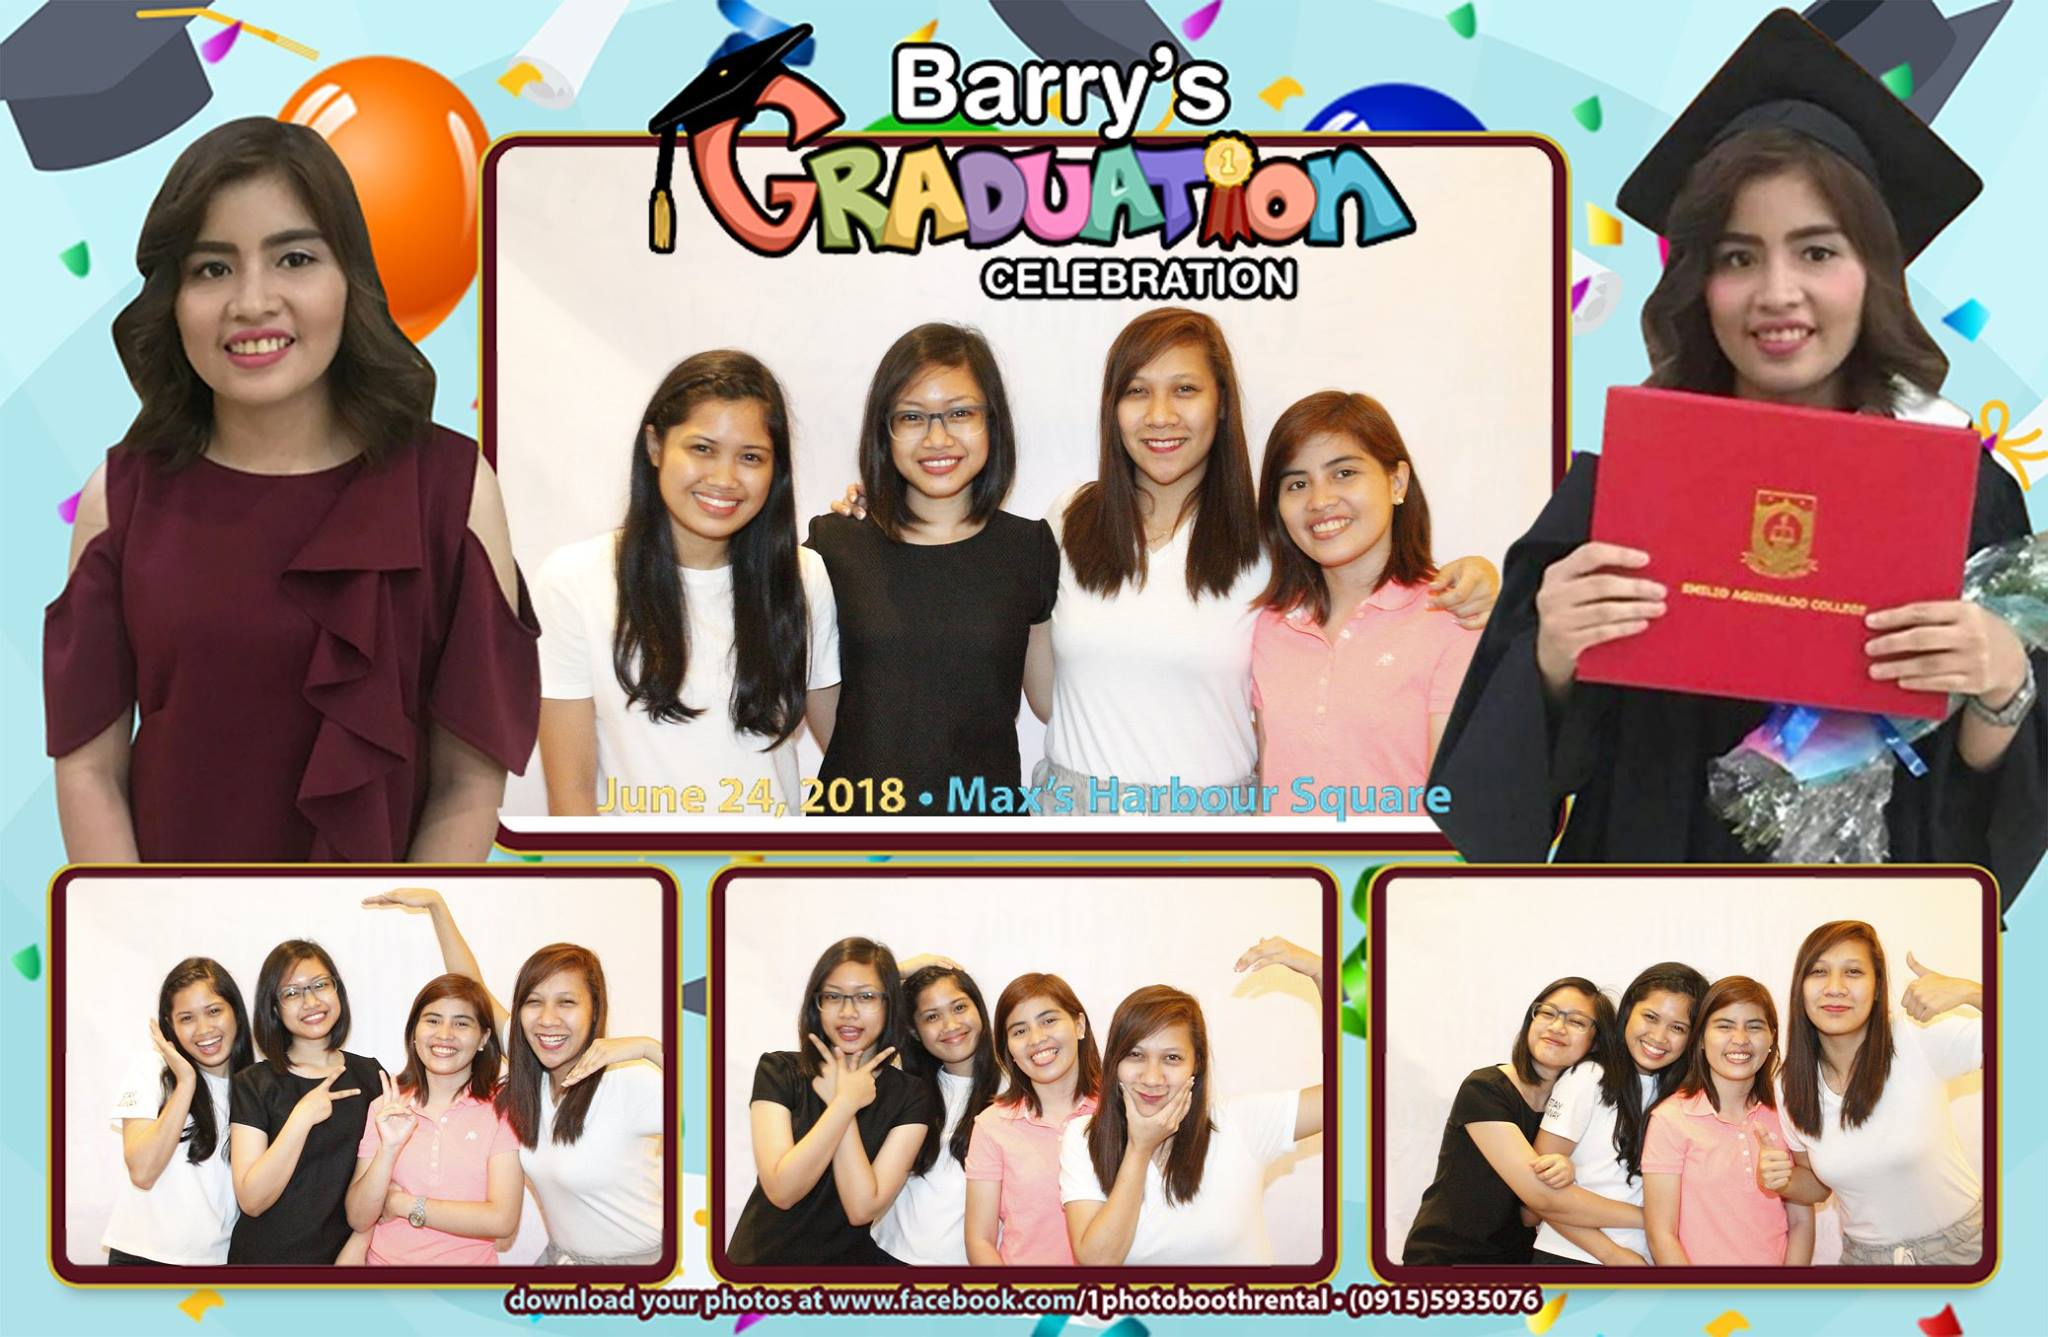 Photo booth rental Philippines, Photobooth for only P1